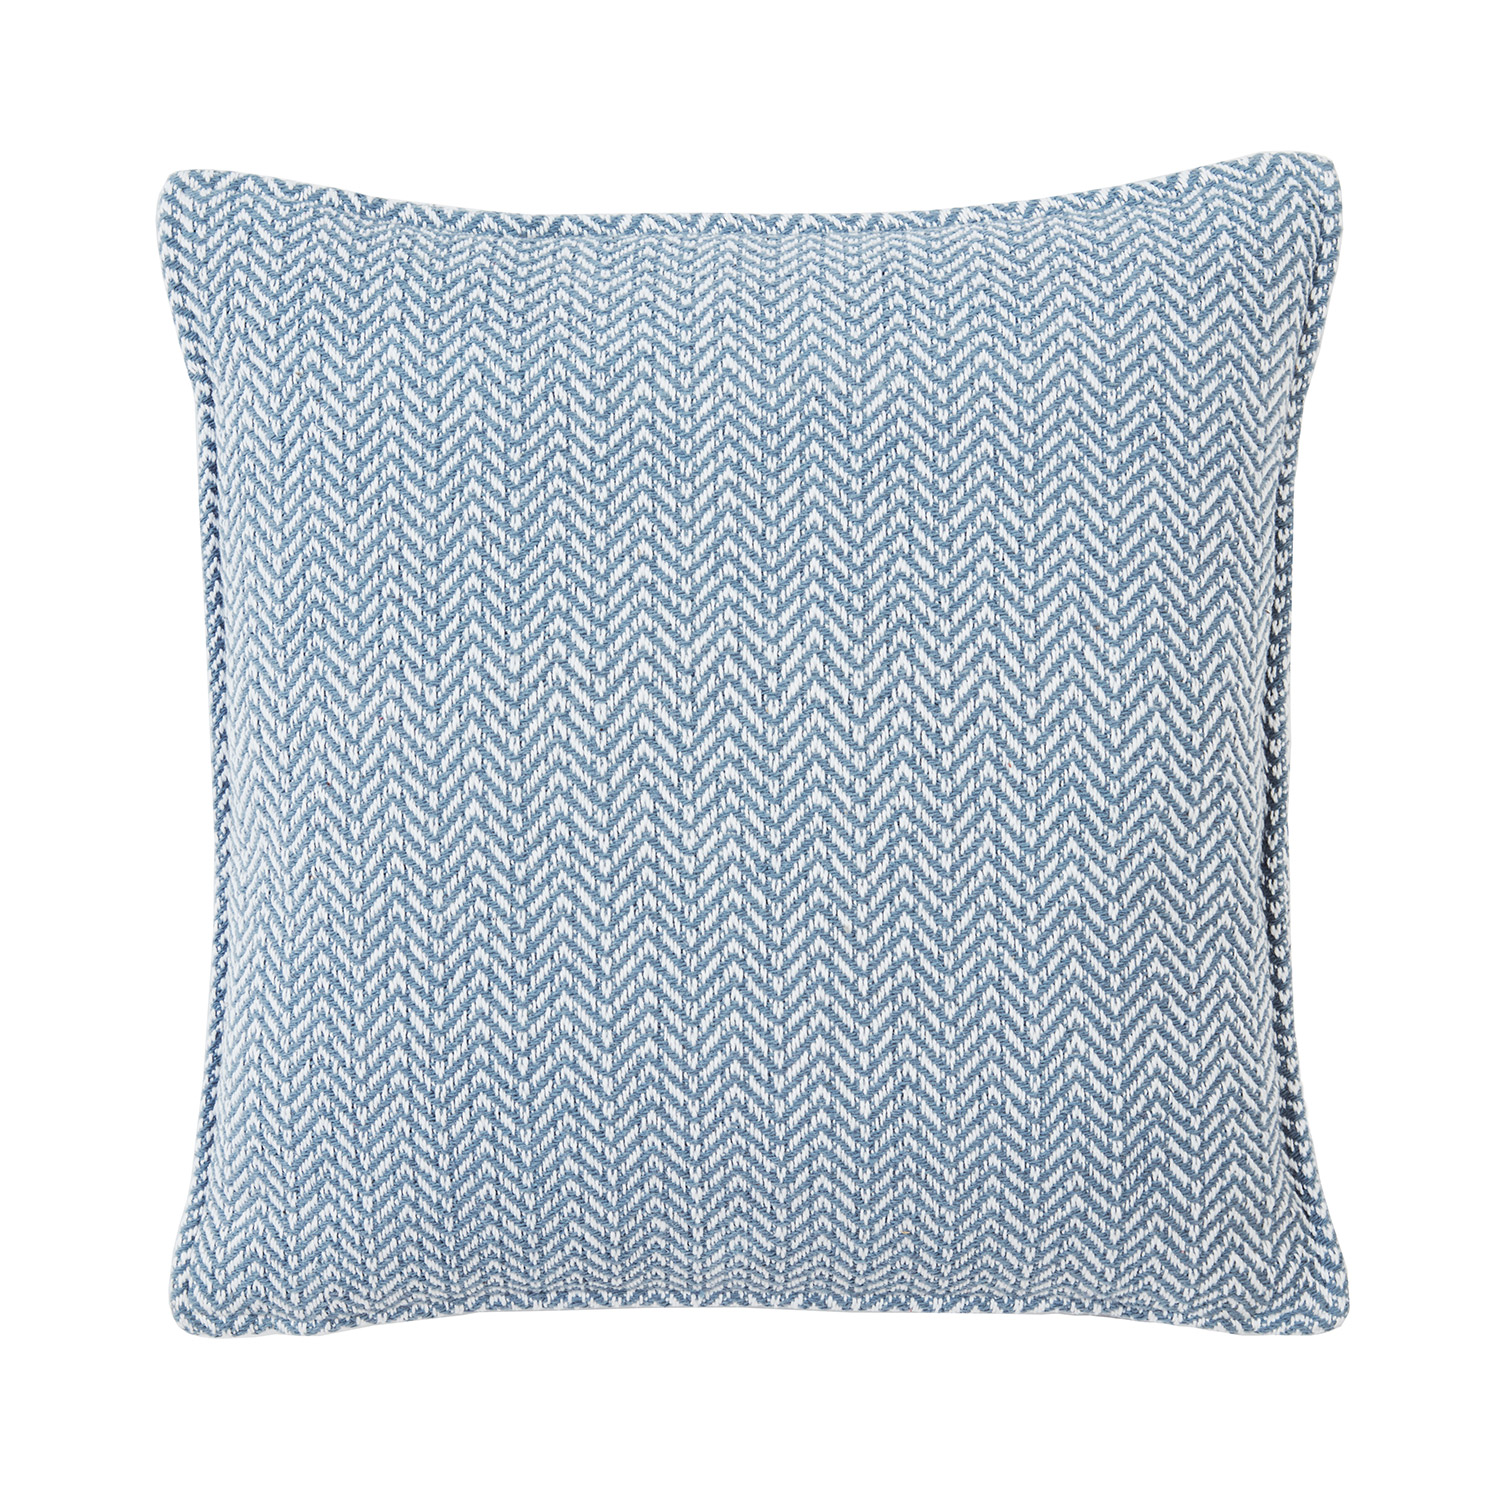 Hanover Blue Luxury Woven Textured Cotton Filled Square Cushion